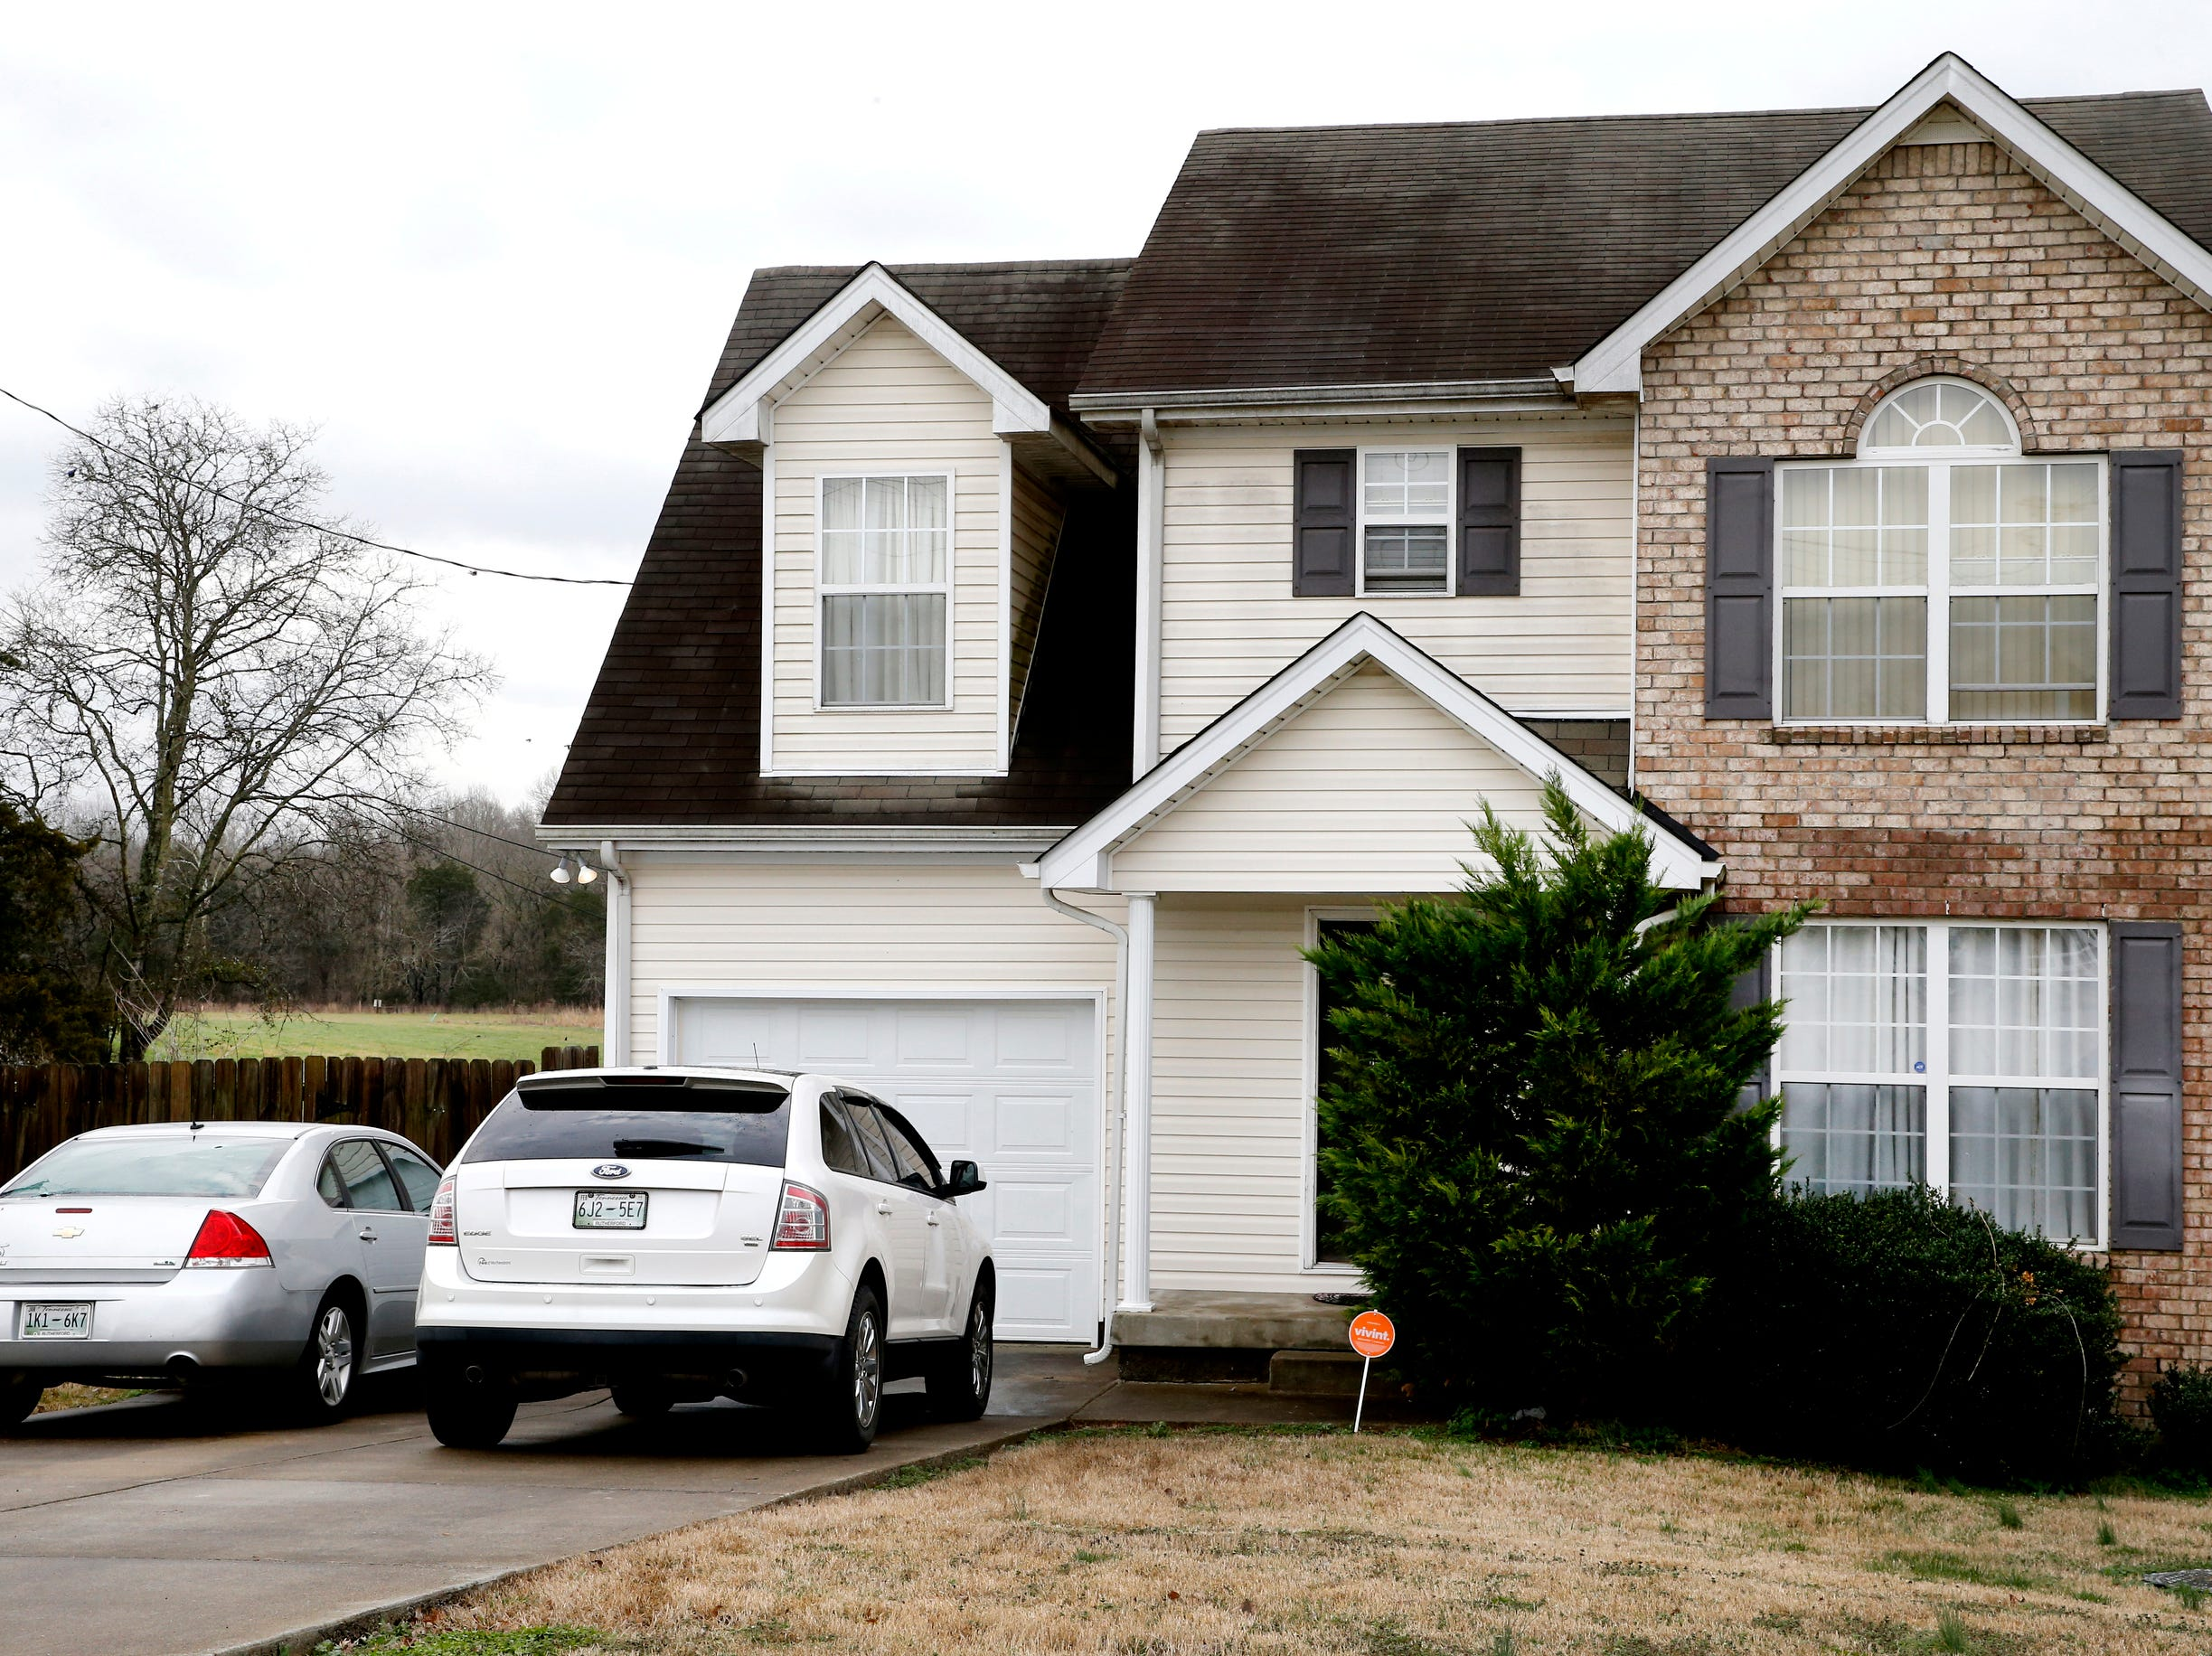 This home on the 200 block of Breeze Drive is the location where an officer-involved deadly shooting took place on Thursday, Feb. 7, 2019.